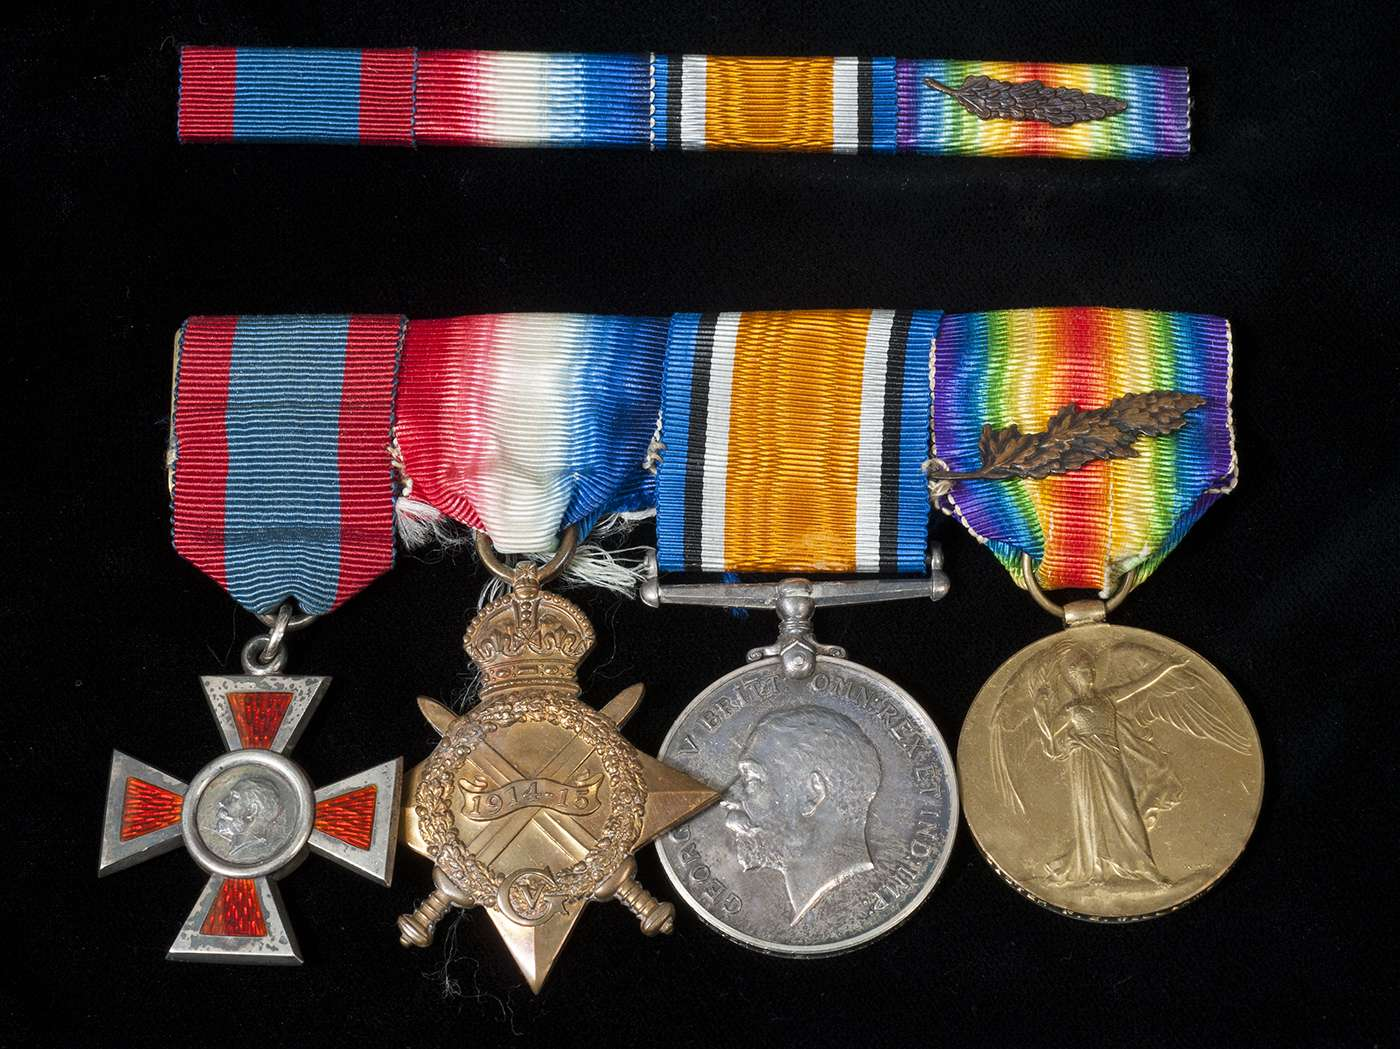 Four medals awarded to Miss Fannie Williams for her service in World War One